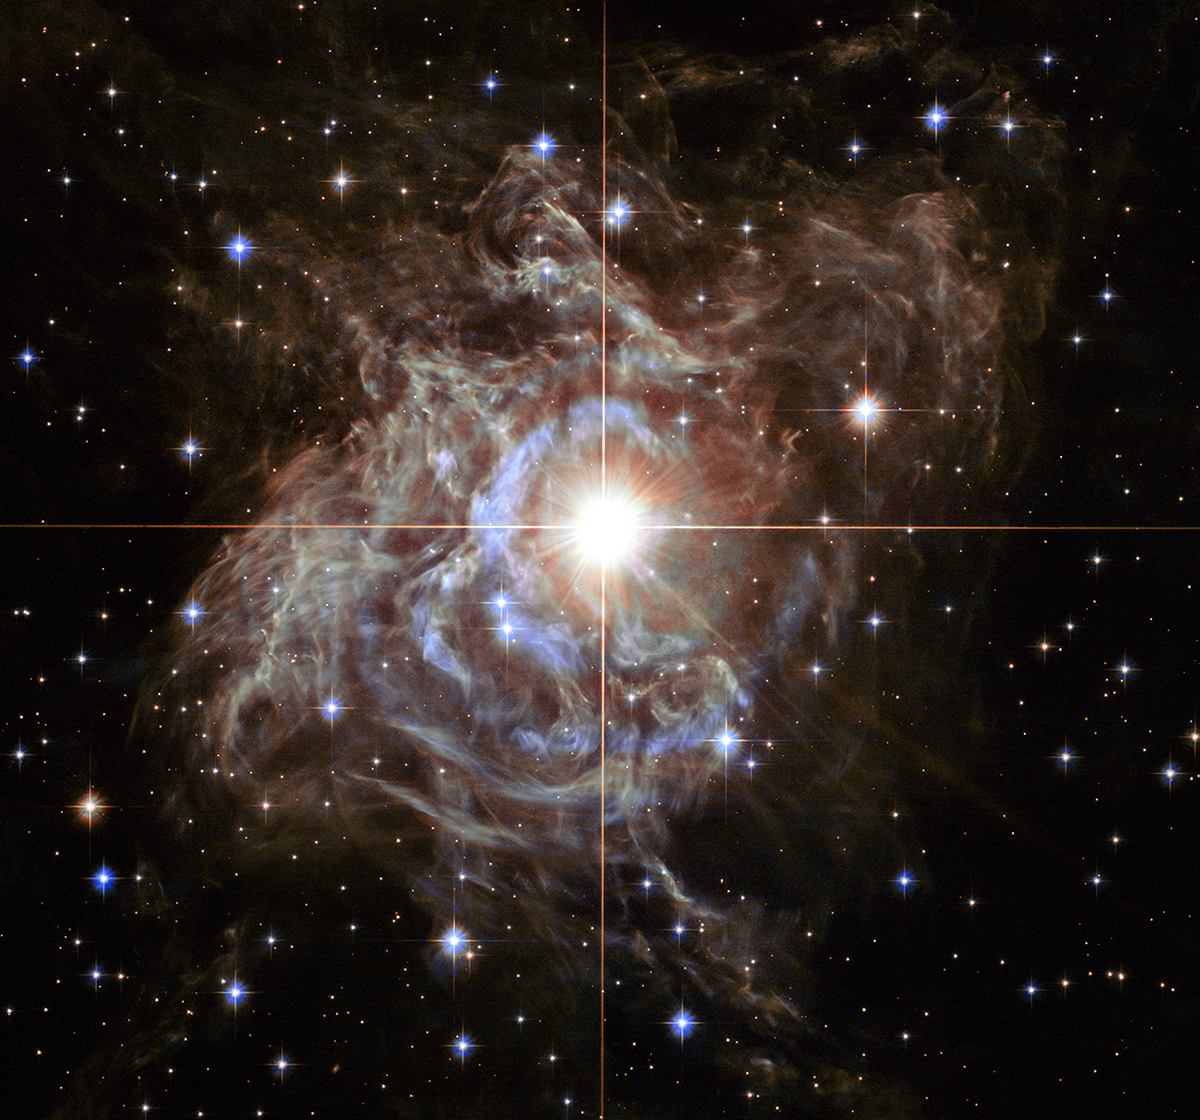 RS Puppis rhythmically brightens and dims over a six-week cycle. It is one of the most luminous in the class of so-called Cepheid variable stars. Its average intrinsic brightness is 15,000 times greater than our Sun's luminosity. Image Credit: NASA, ESA, and the Hubble Heritage Team (STScI/AURA)-Hubble/Europe Collaboration